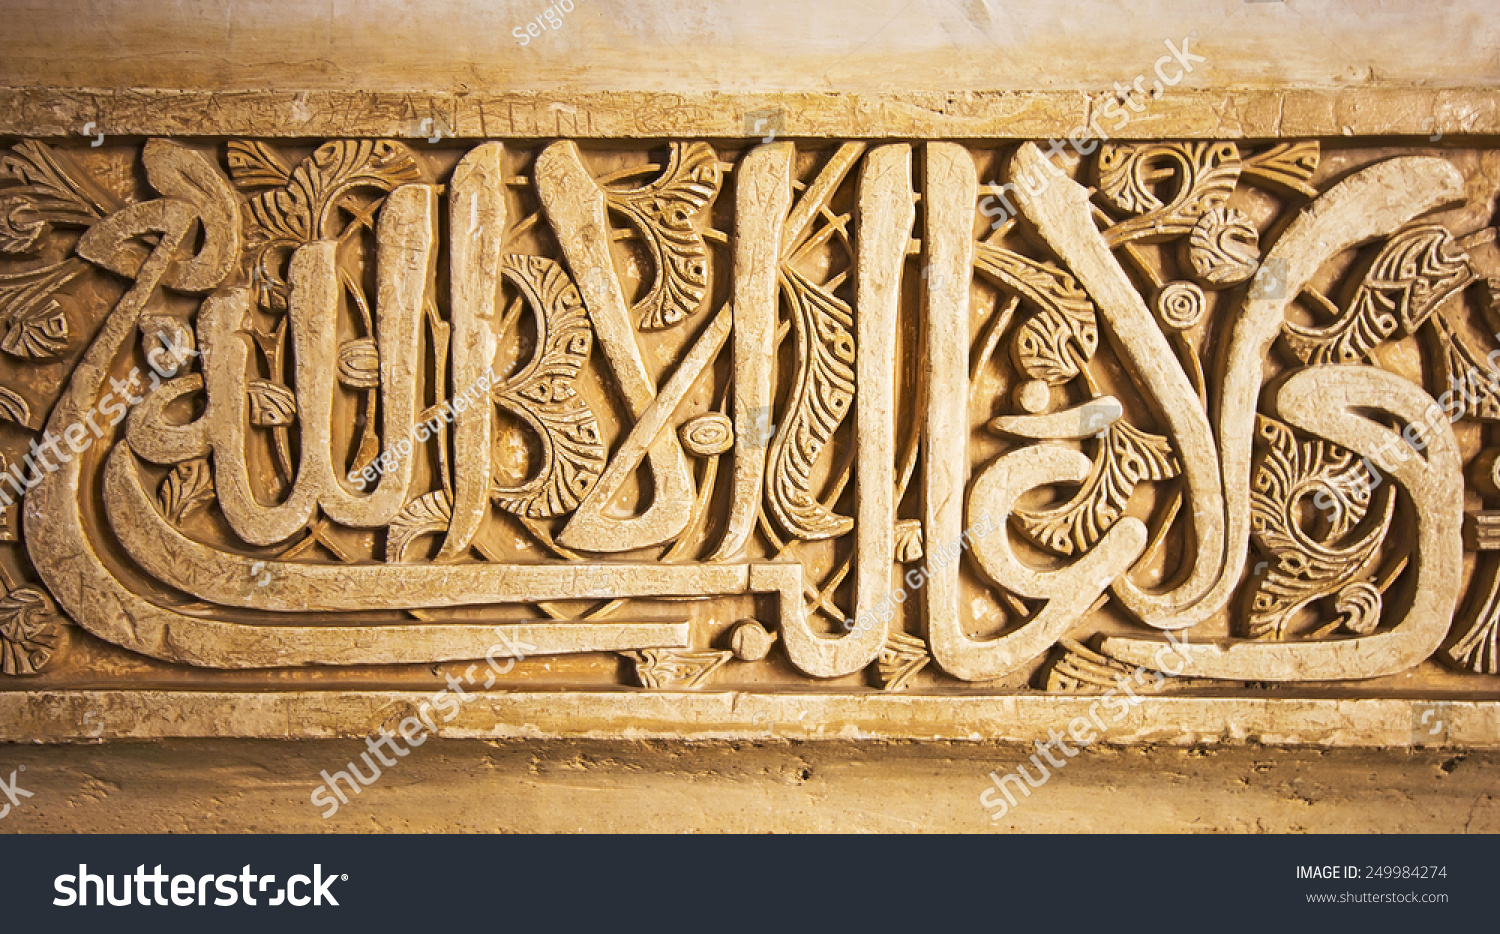 Detailed Intricate Patterns On Wall Nasrid Stock Photo Edit Now 249984274